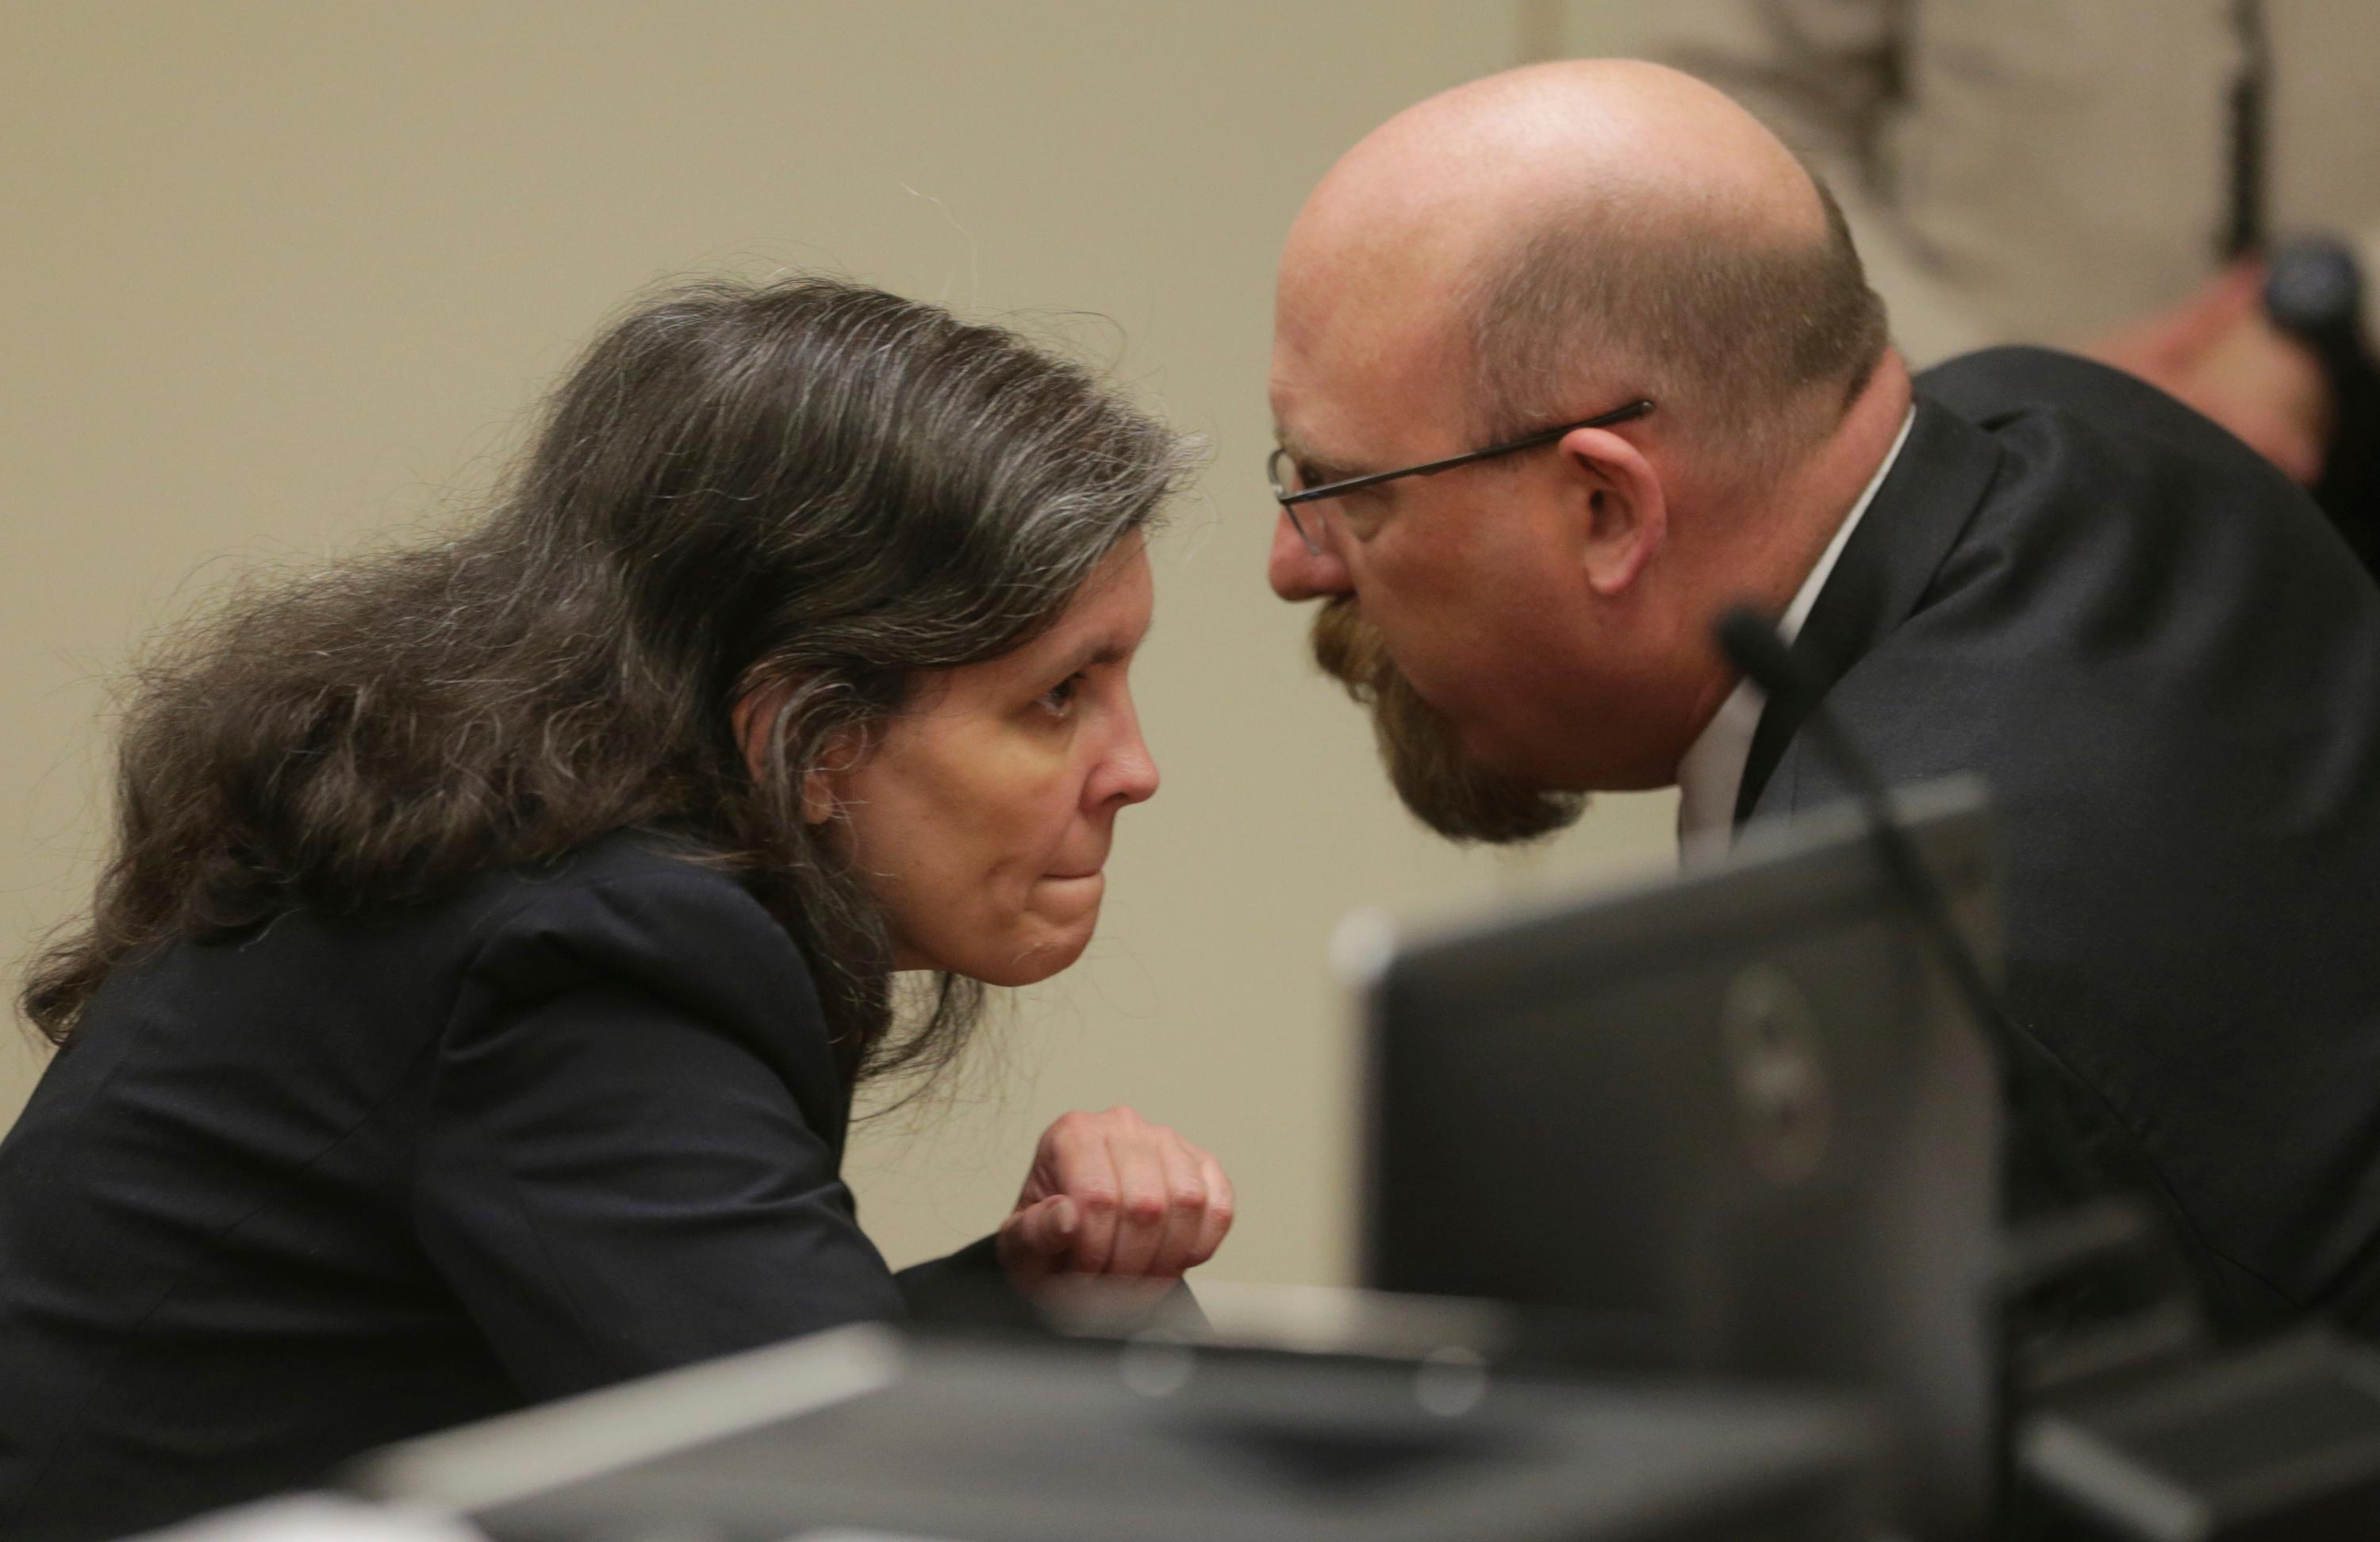 Louise Turpin, left, and her attorney, Jeff Moore, appear in court for a conference about their case in Riverside, Calif., Friday, Feb. 23, 2018. A California couple already accused of starving and shackling some of their 13 children has pleaded not guilty to new charges of child abuse. David and Louise Turpin entered pleas Friday to three new charges of abuse and Louise Turpin also pleaded not guilty to a count of felony assault. (Watchara Phomicinda/The Press Enterprise via AP, Pool)